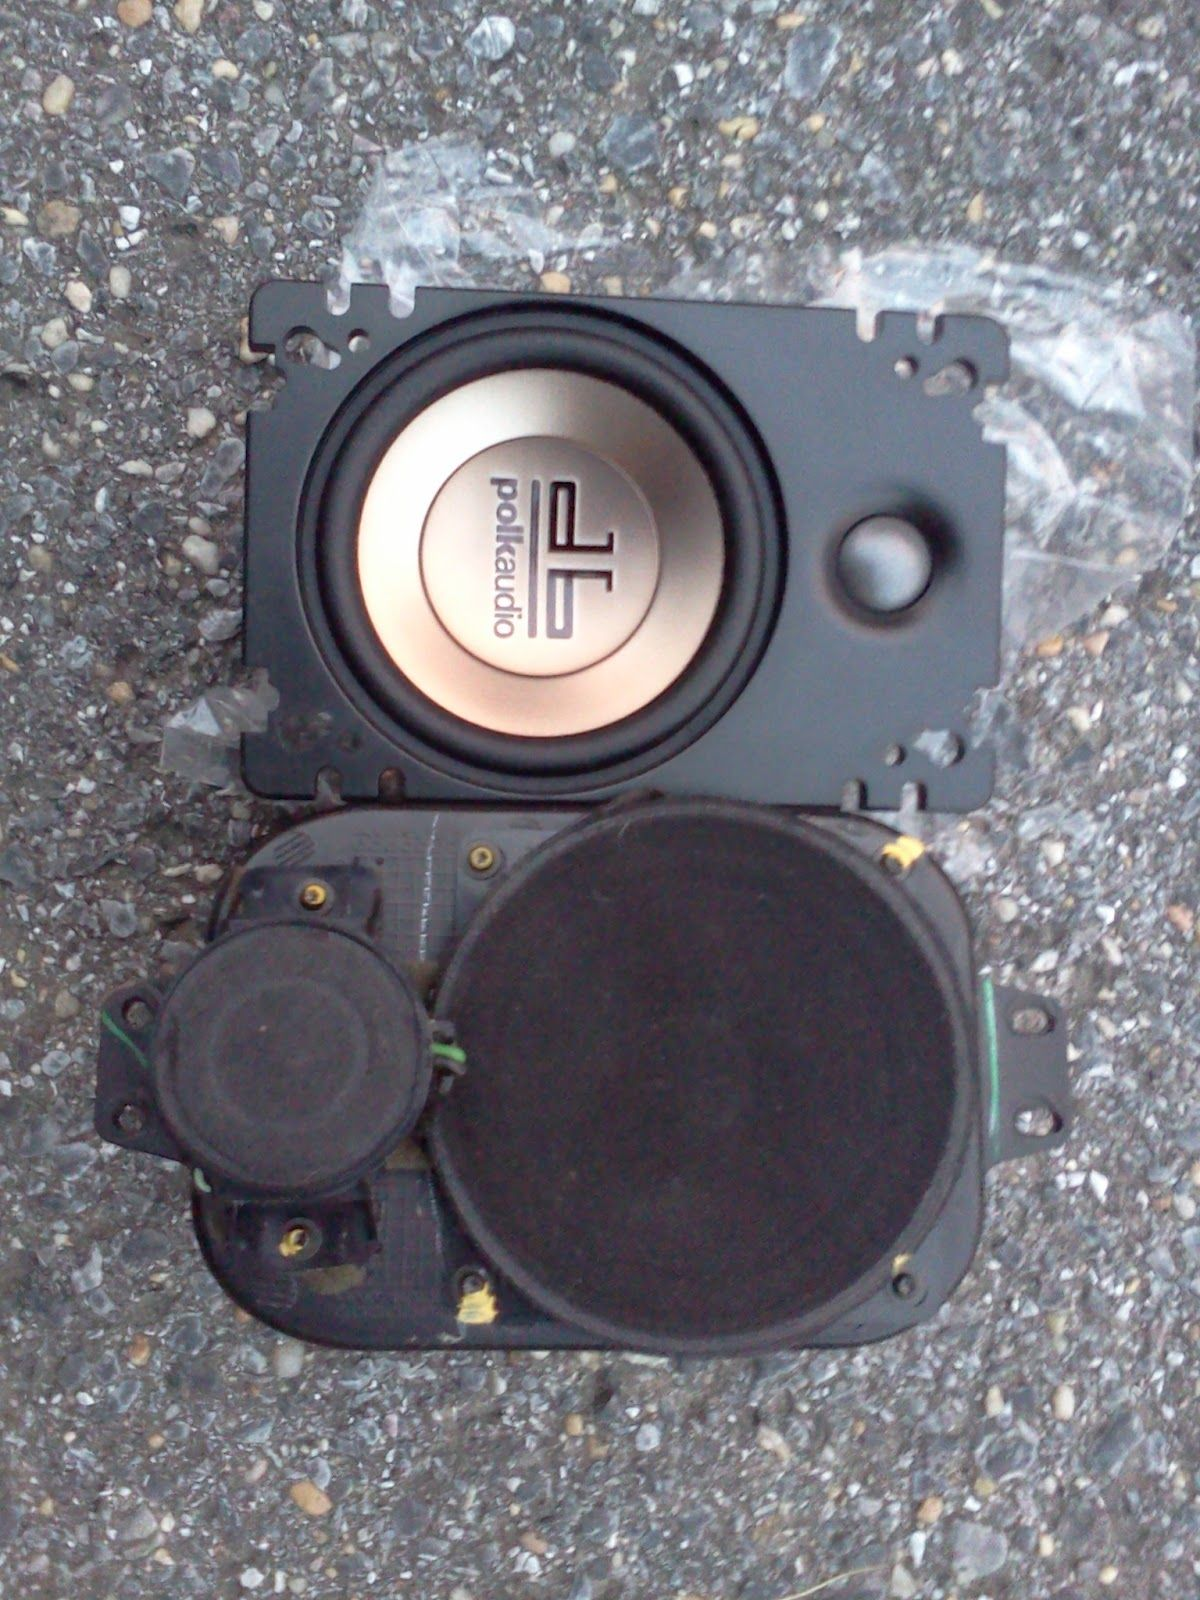 Daedalus Ideas What Ever Comes Of Thinking Tj Speaker Upgrade From Stock Speakers Diy Jeep Accessories Jeep Wrangler Tj Diy Jeep